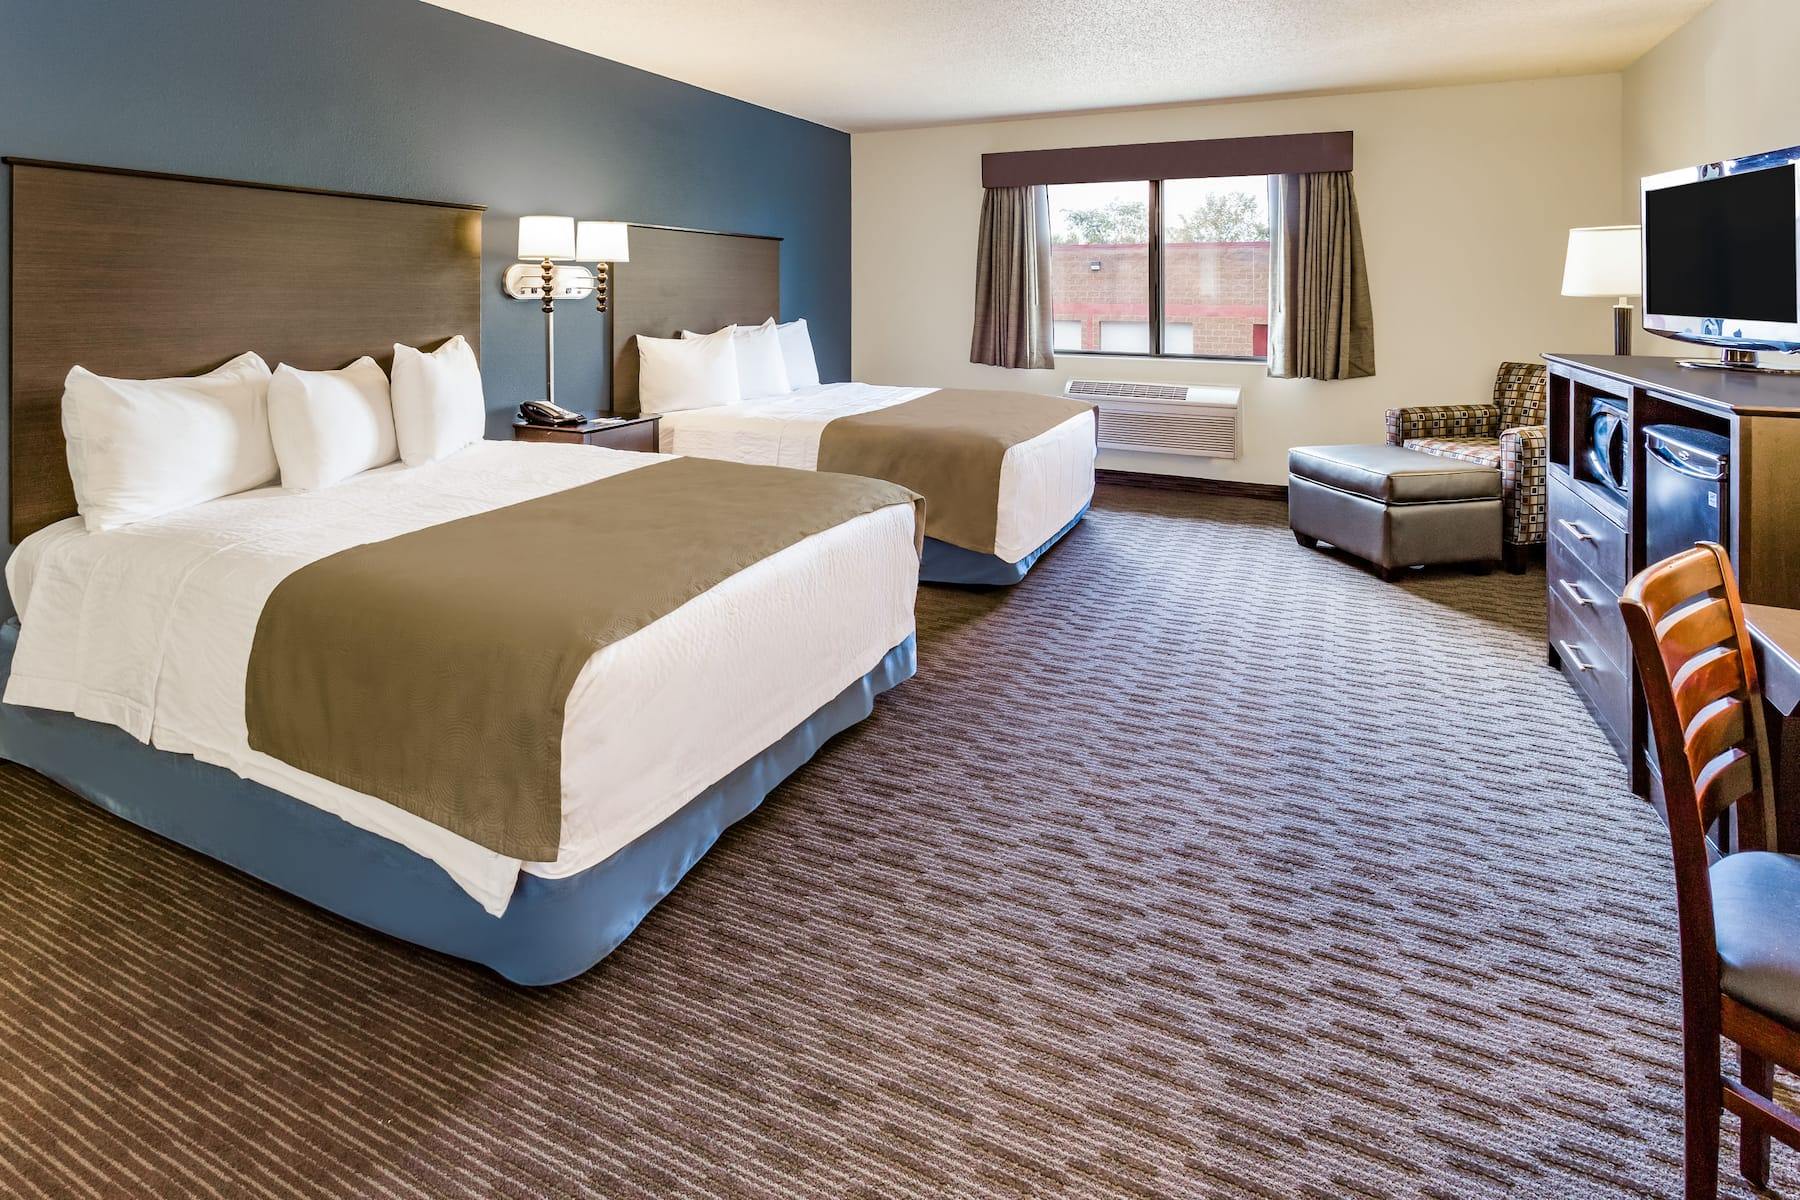 Americinn By Wyndham Hotel And Suites Long Lake Long